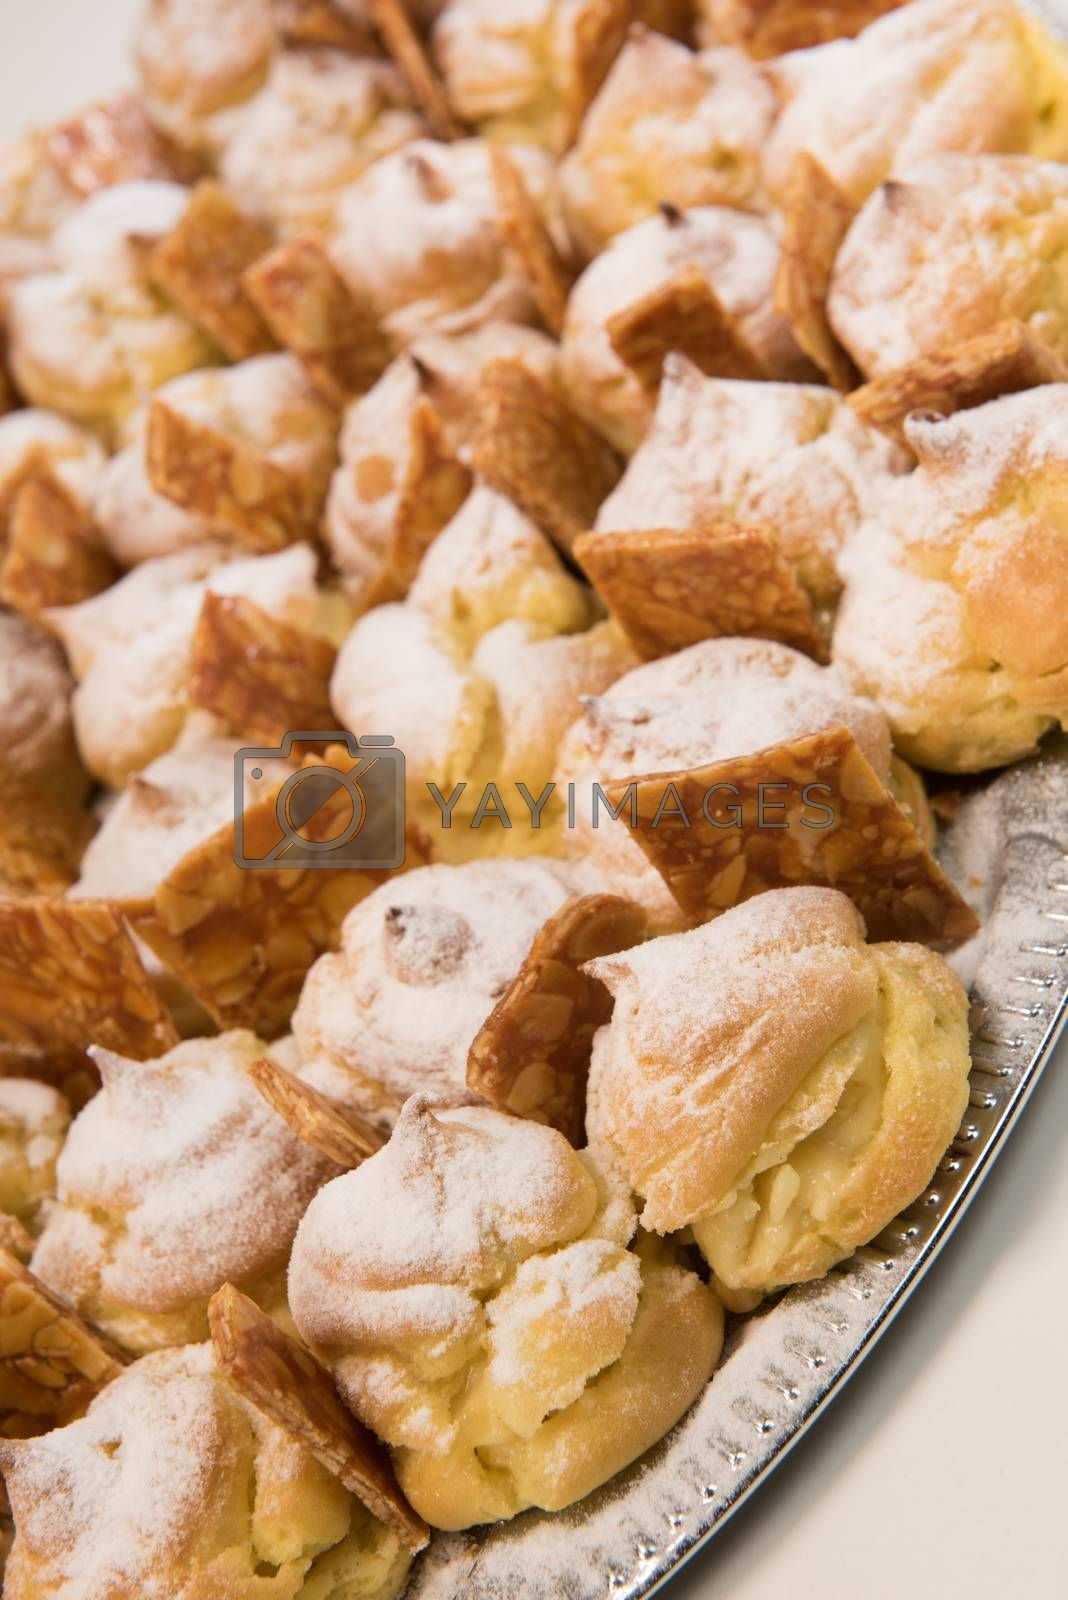 Cream puffs filled vanilla custard and dusted with icing on a plat and nougatine, France